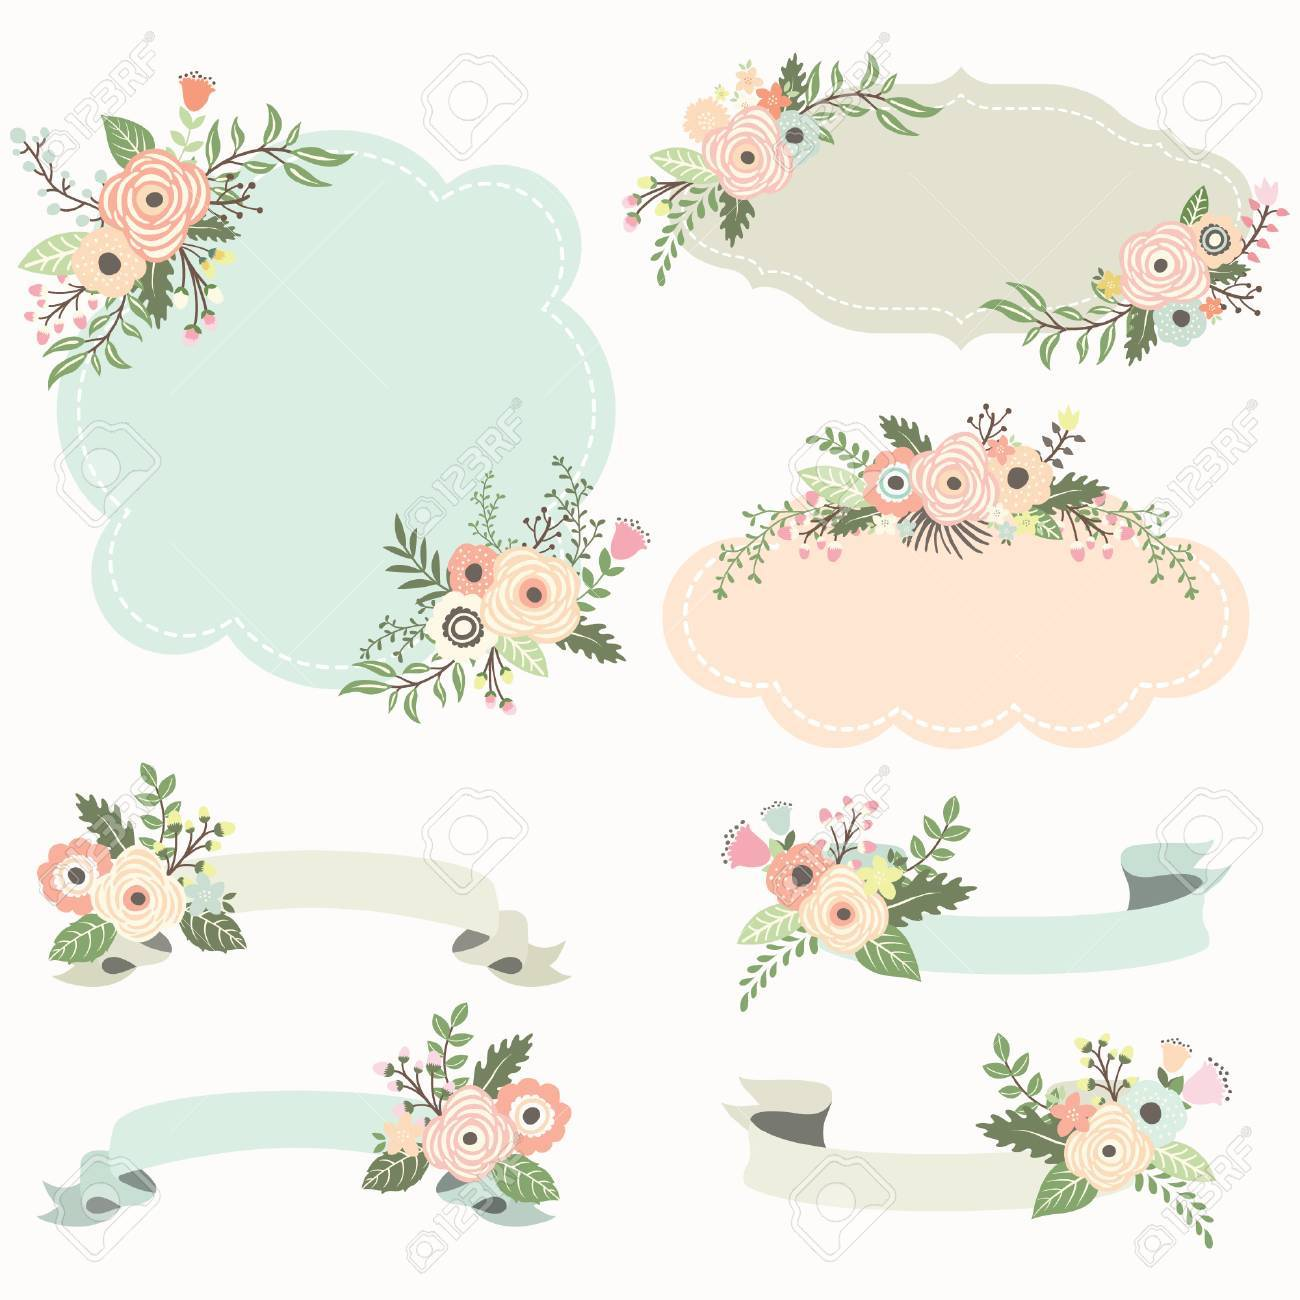 Rustic Floral Frame Elements Royalty Free Cliparts Vectors And